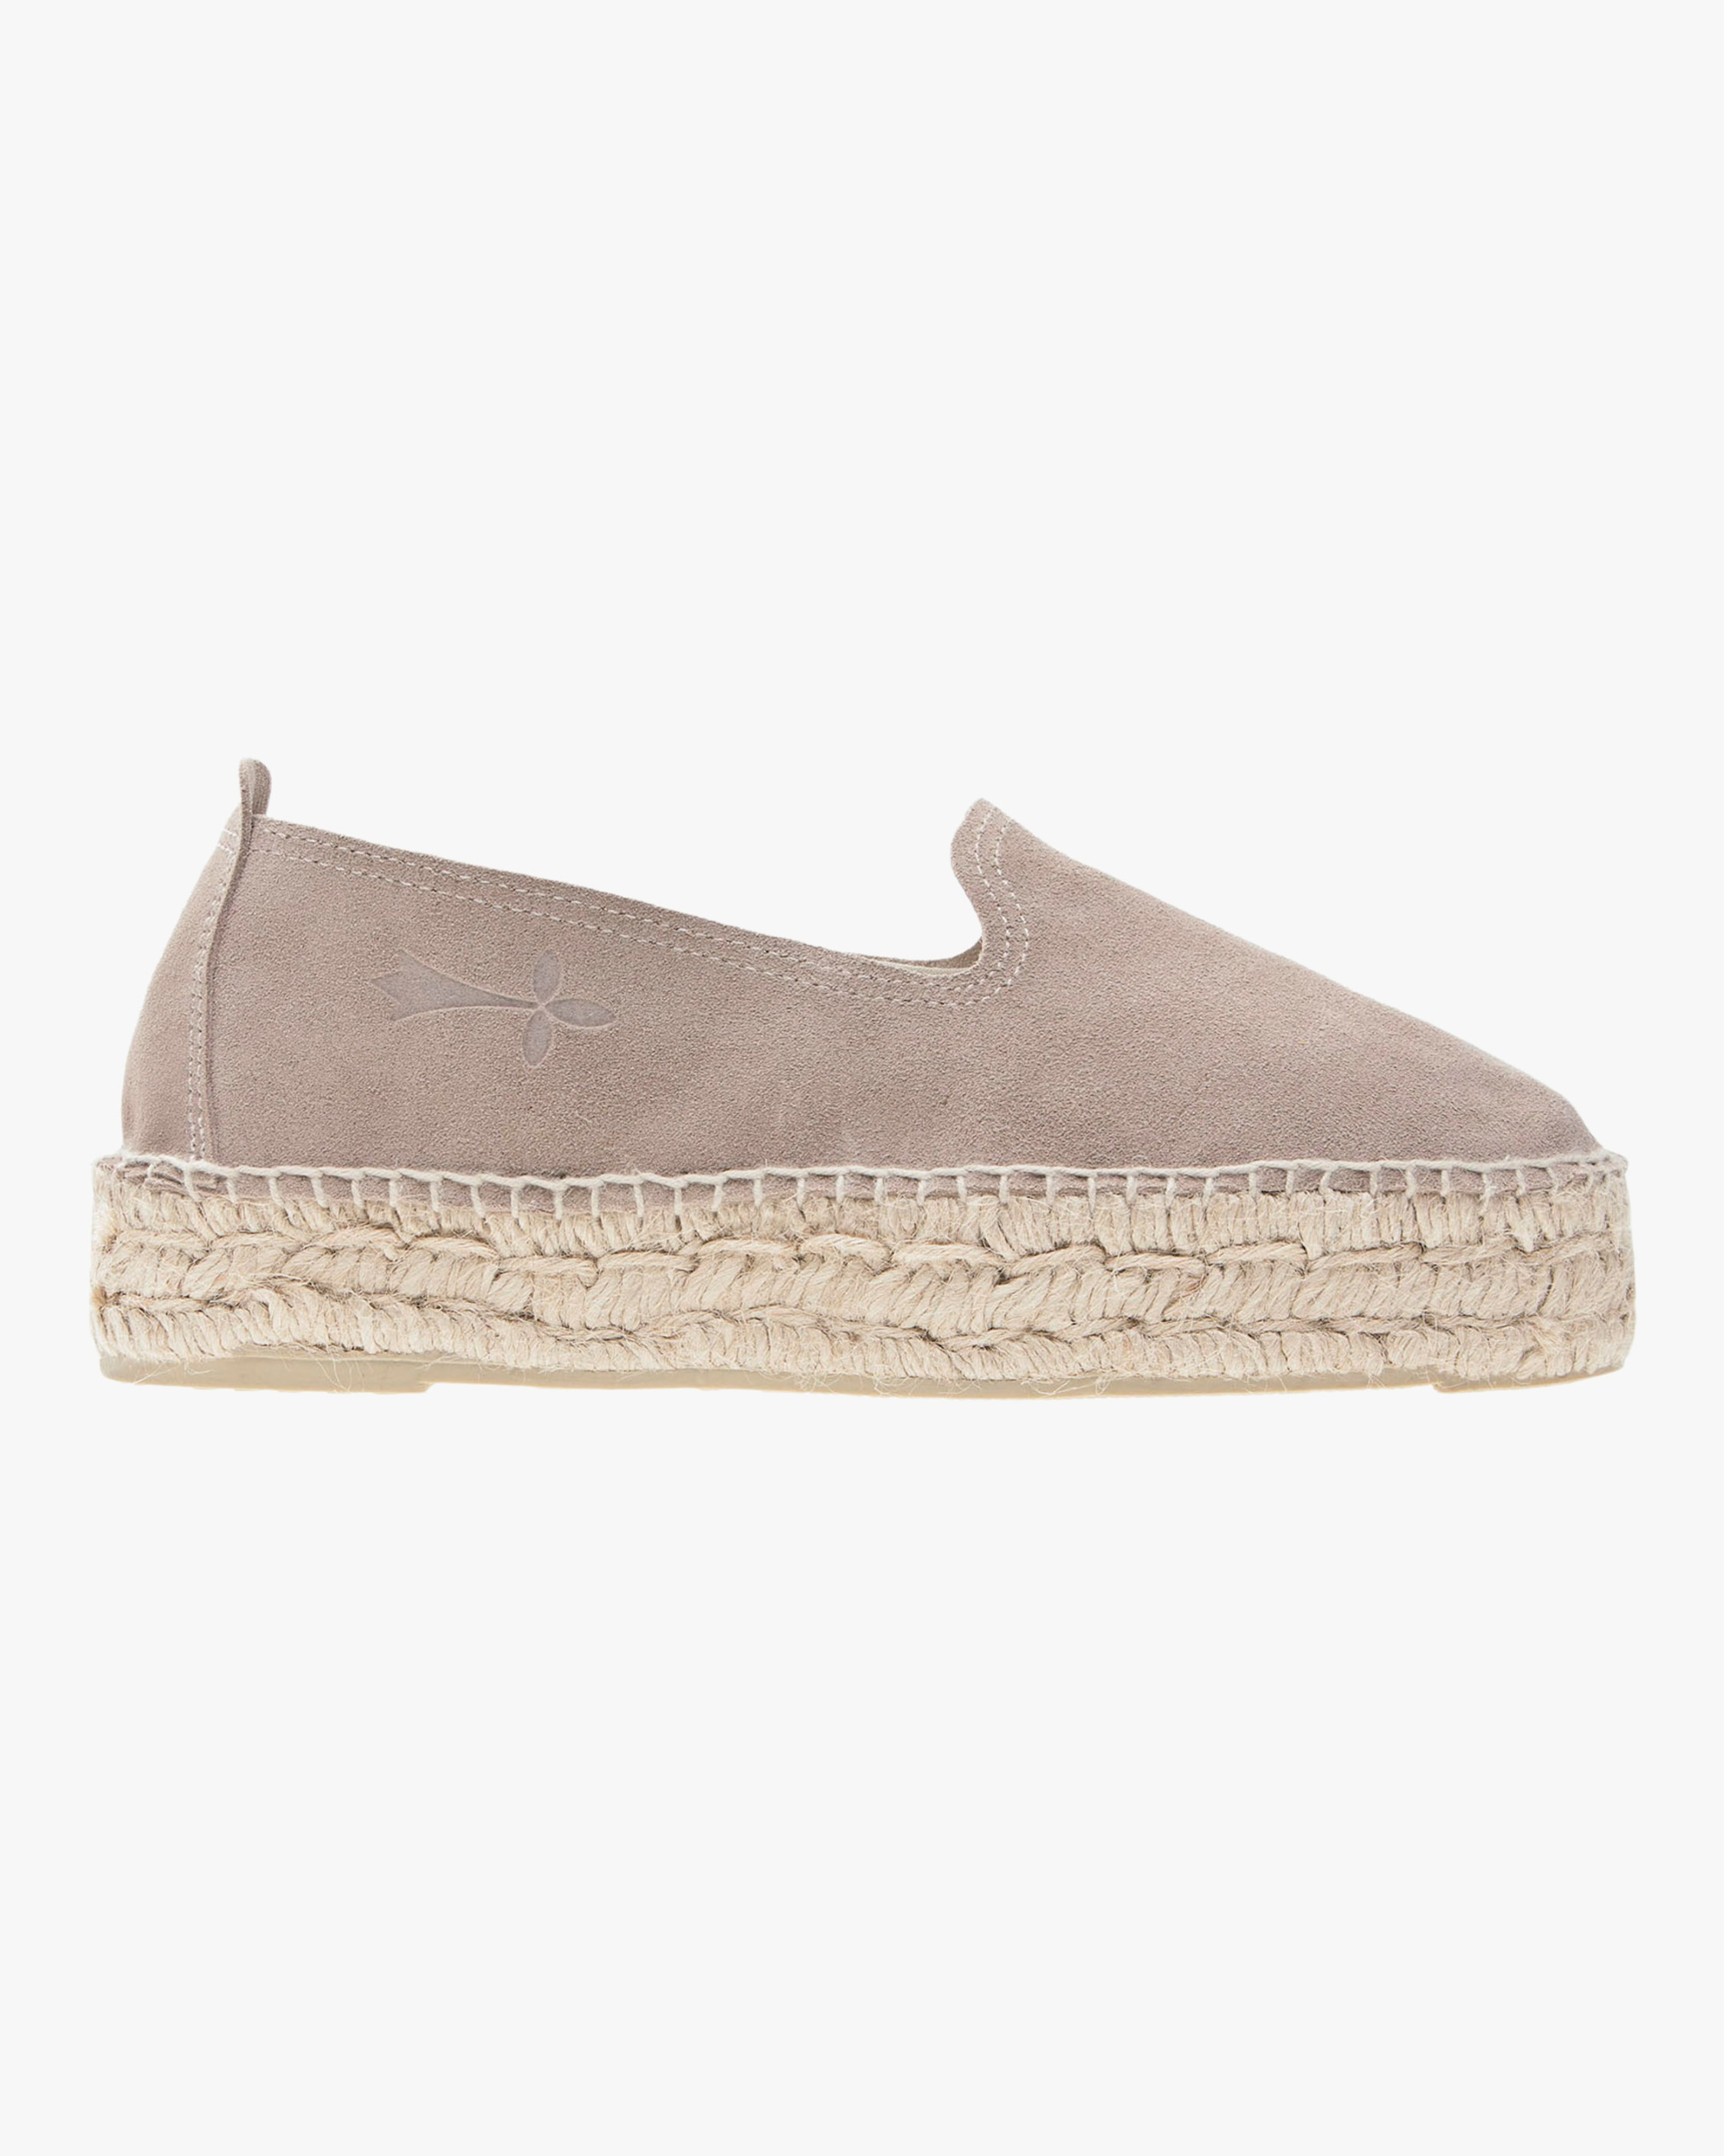 Manebi HAMPTONS SLIP-ON ESPADRILLE